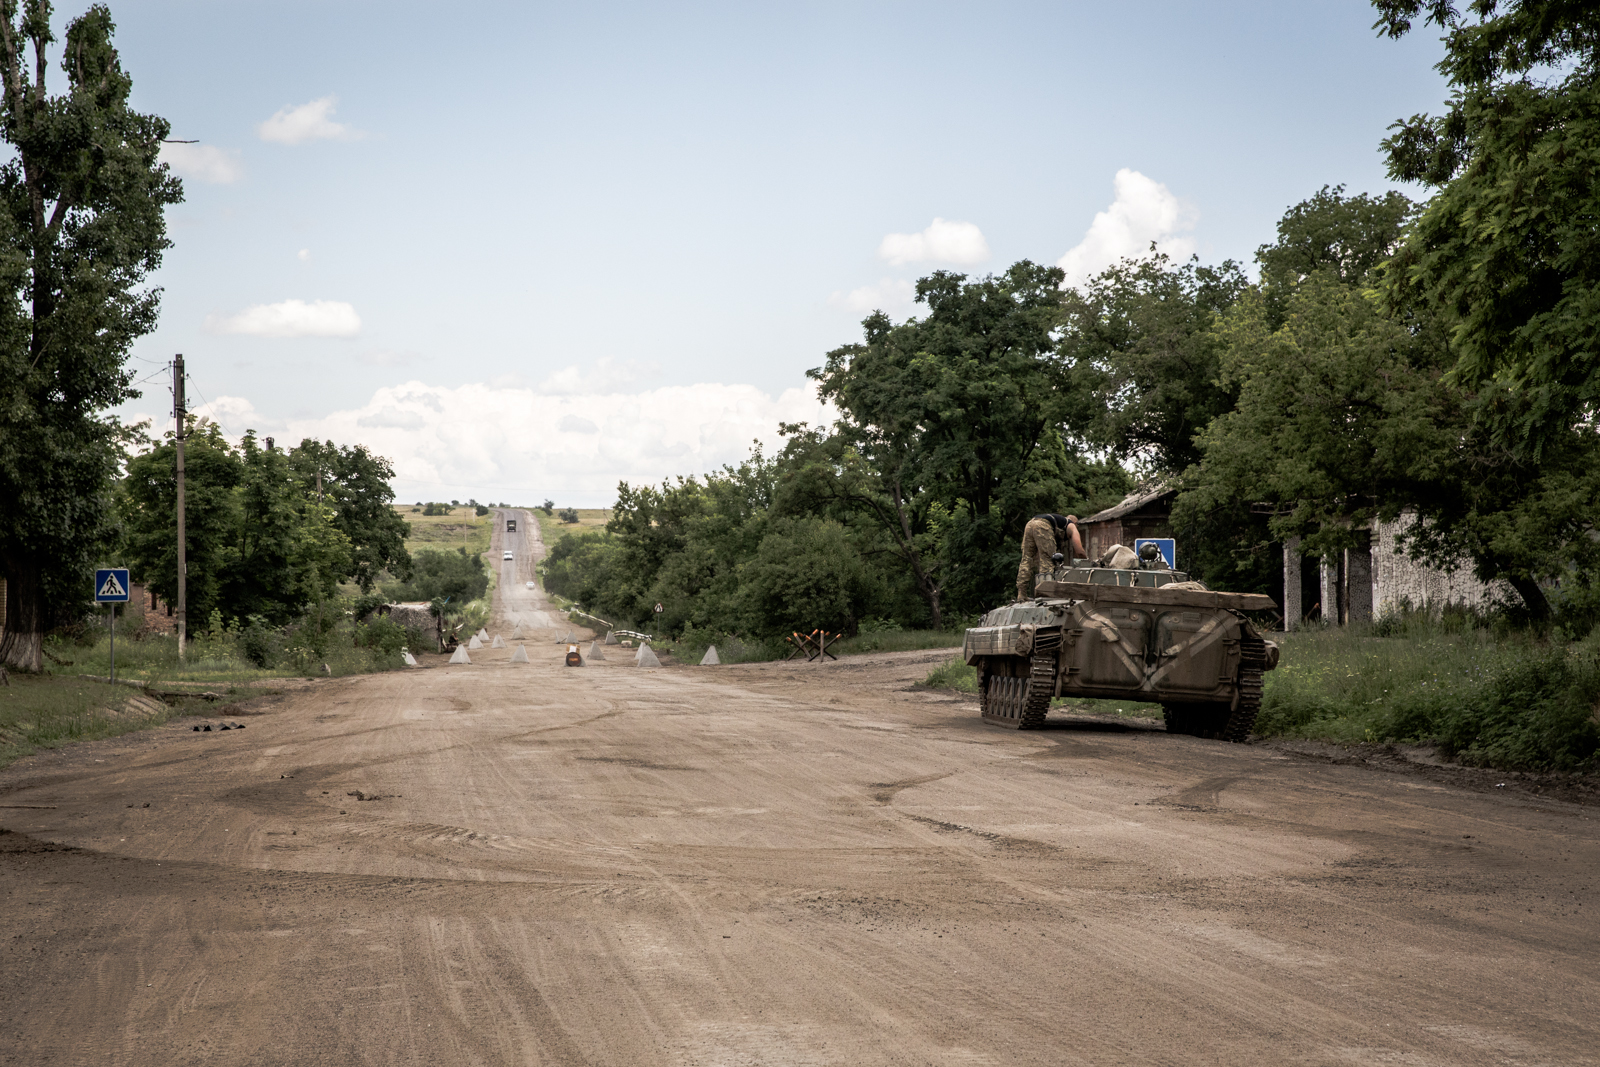 Luganskoje lies at the end of a 19km stretch of highway out of Debaltseve, the key eastern railway town now under rebel control that saw heavy fighting back in February 2015. [Ioana Moldovan/Al Jazeera]